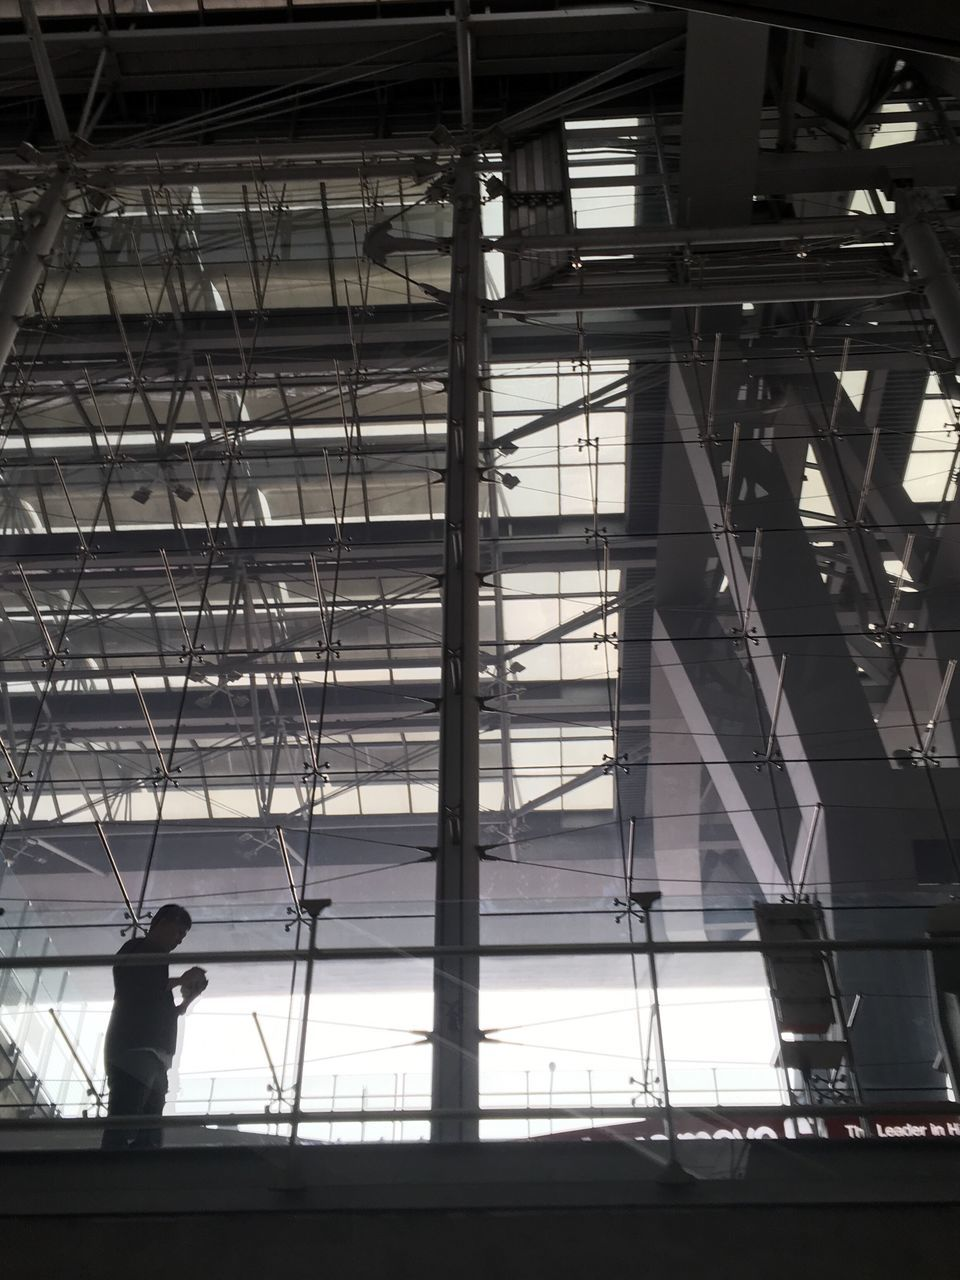 built structure, architecture, indoors, one person, real people, full length, standing, silhouette, day, men, building exterior, people